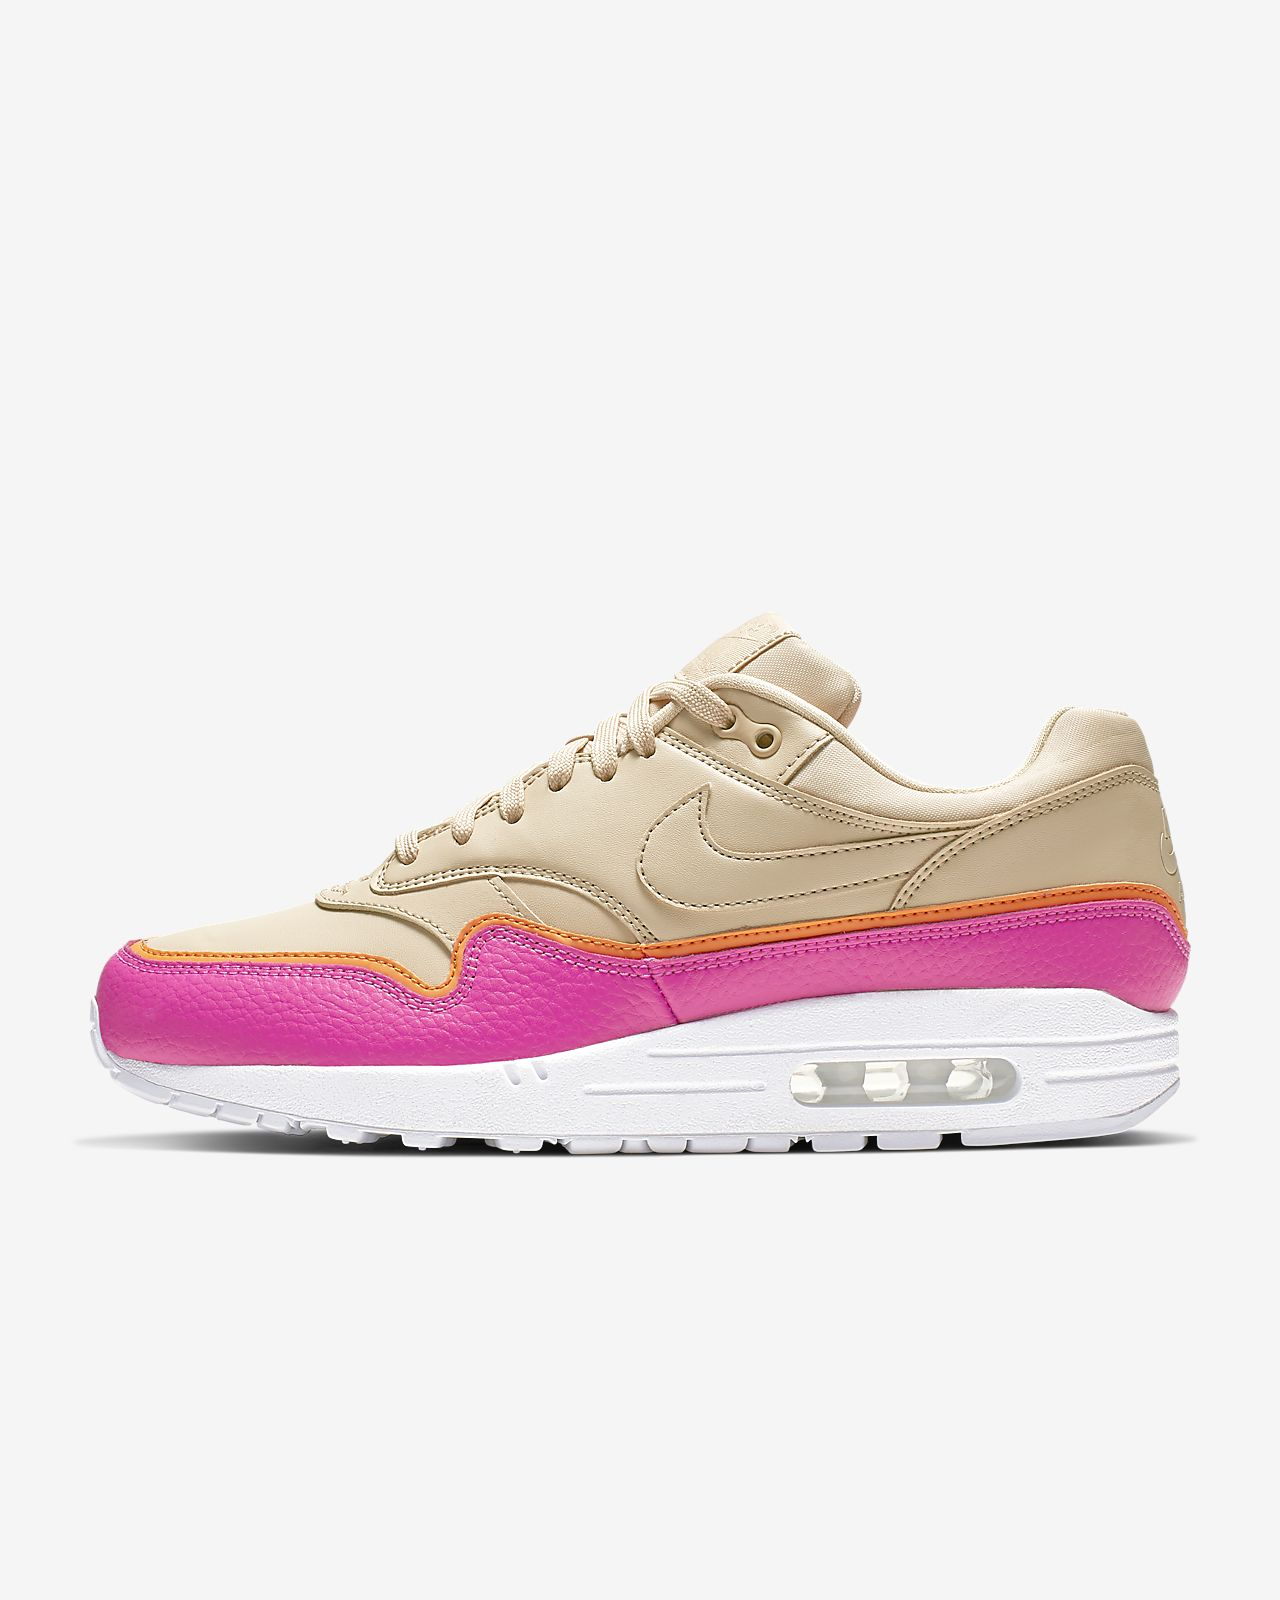 super popular 85b86 1135a ... Nike Air Max 1 SE Women s Shoe